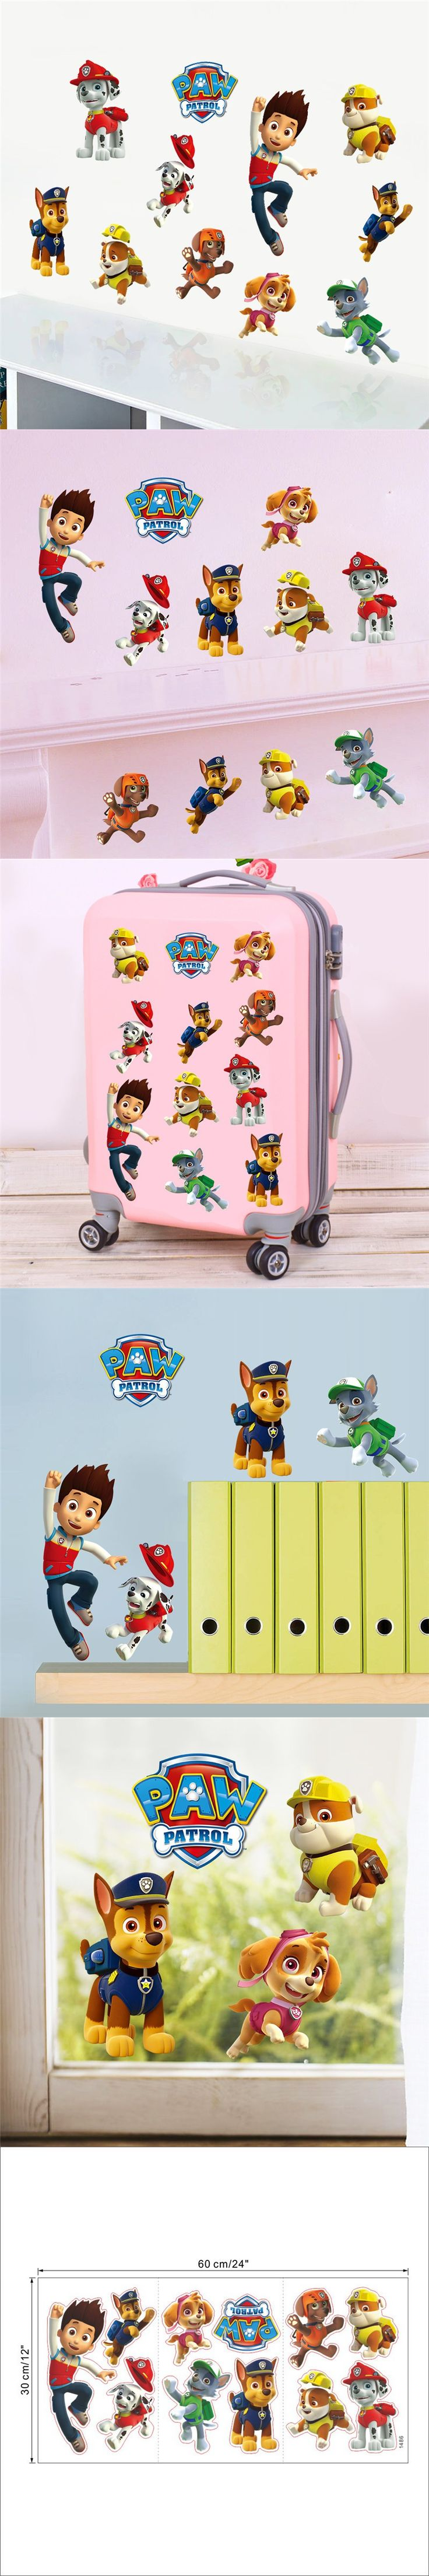 best 25 boys wall stickers ideas on pinterest superhero boys diy american cartoon animal smart dog boy wall sticker for kids rooms decorative baby children bedroom